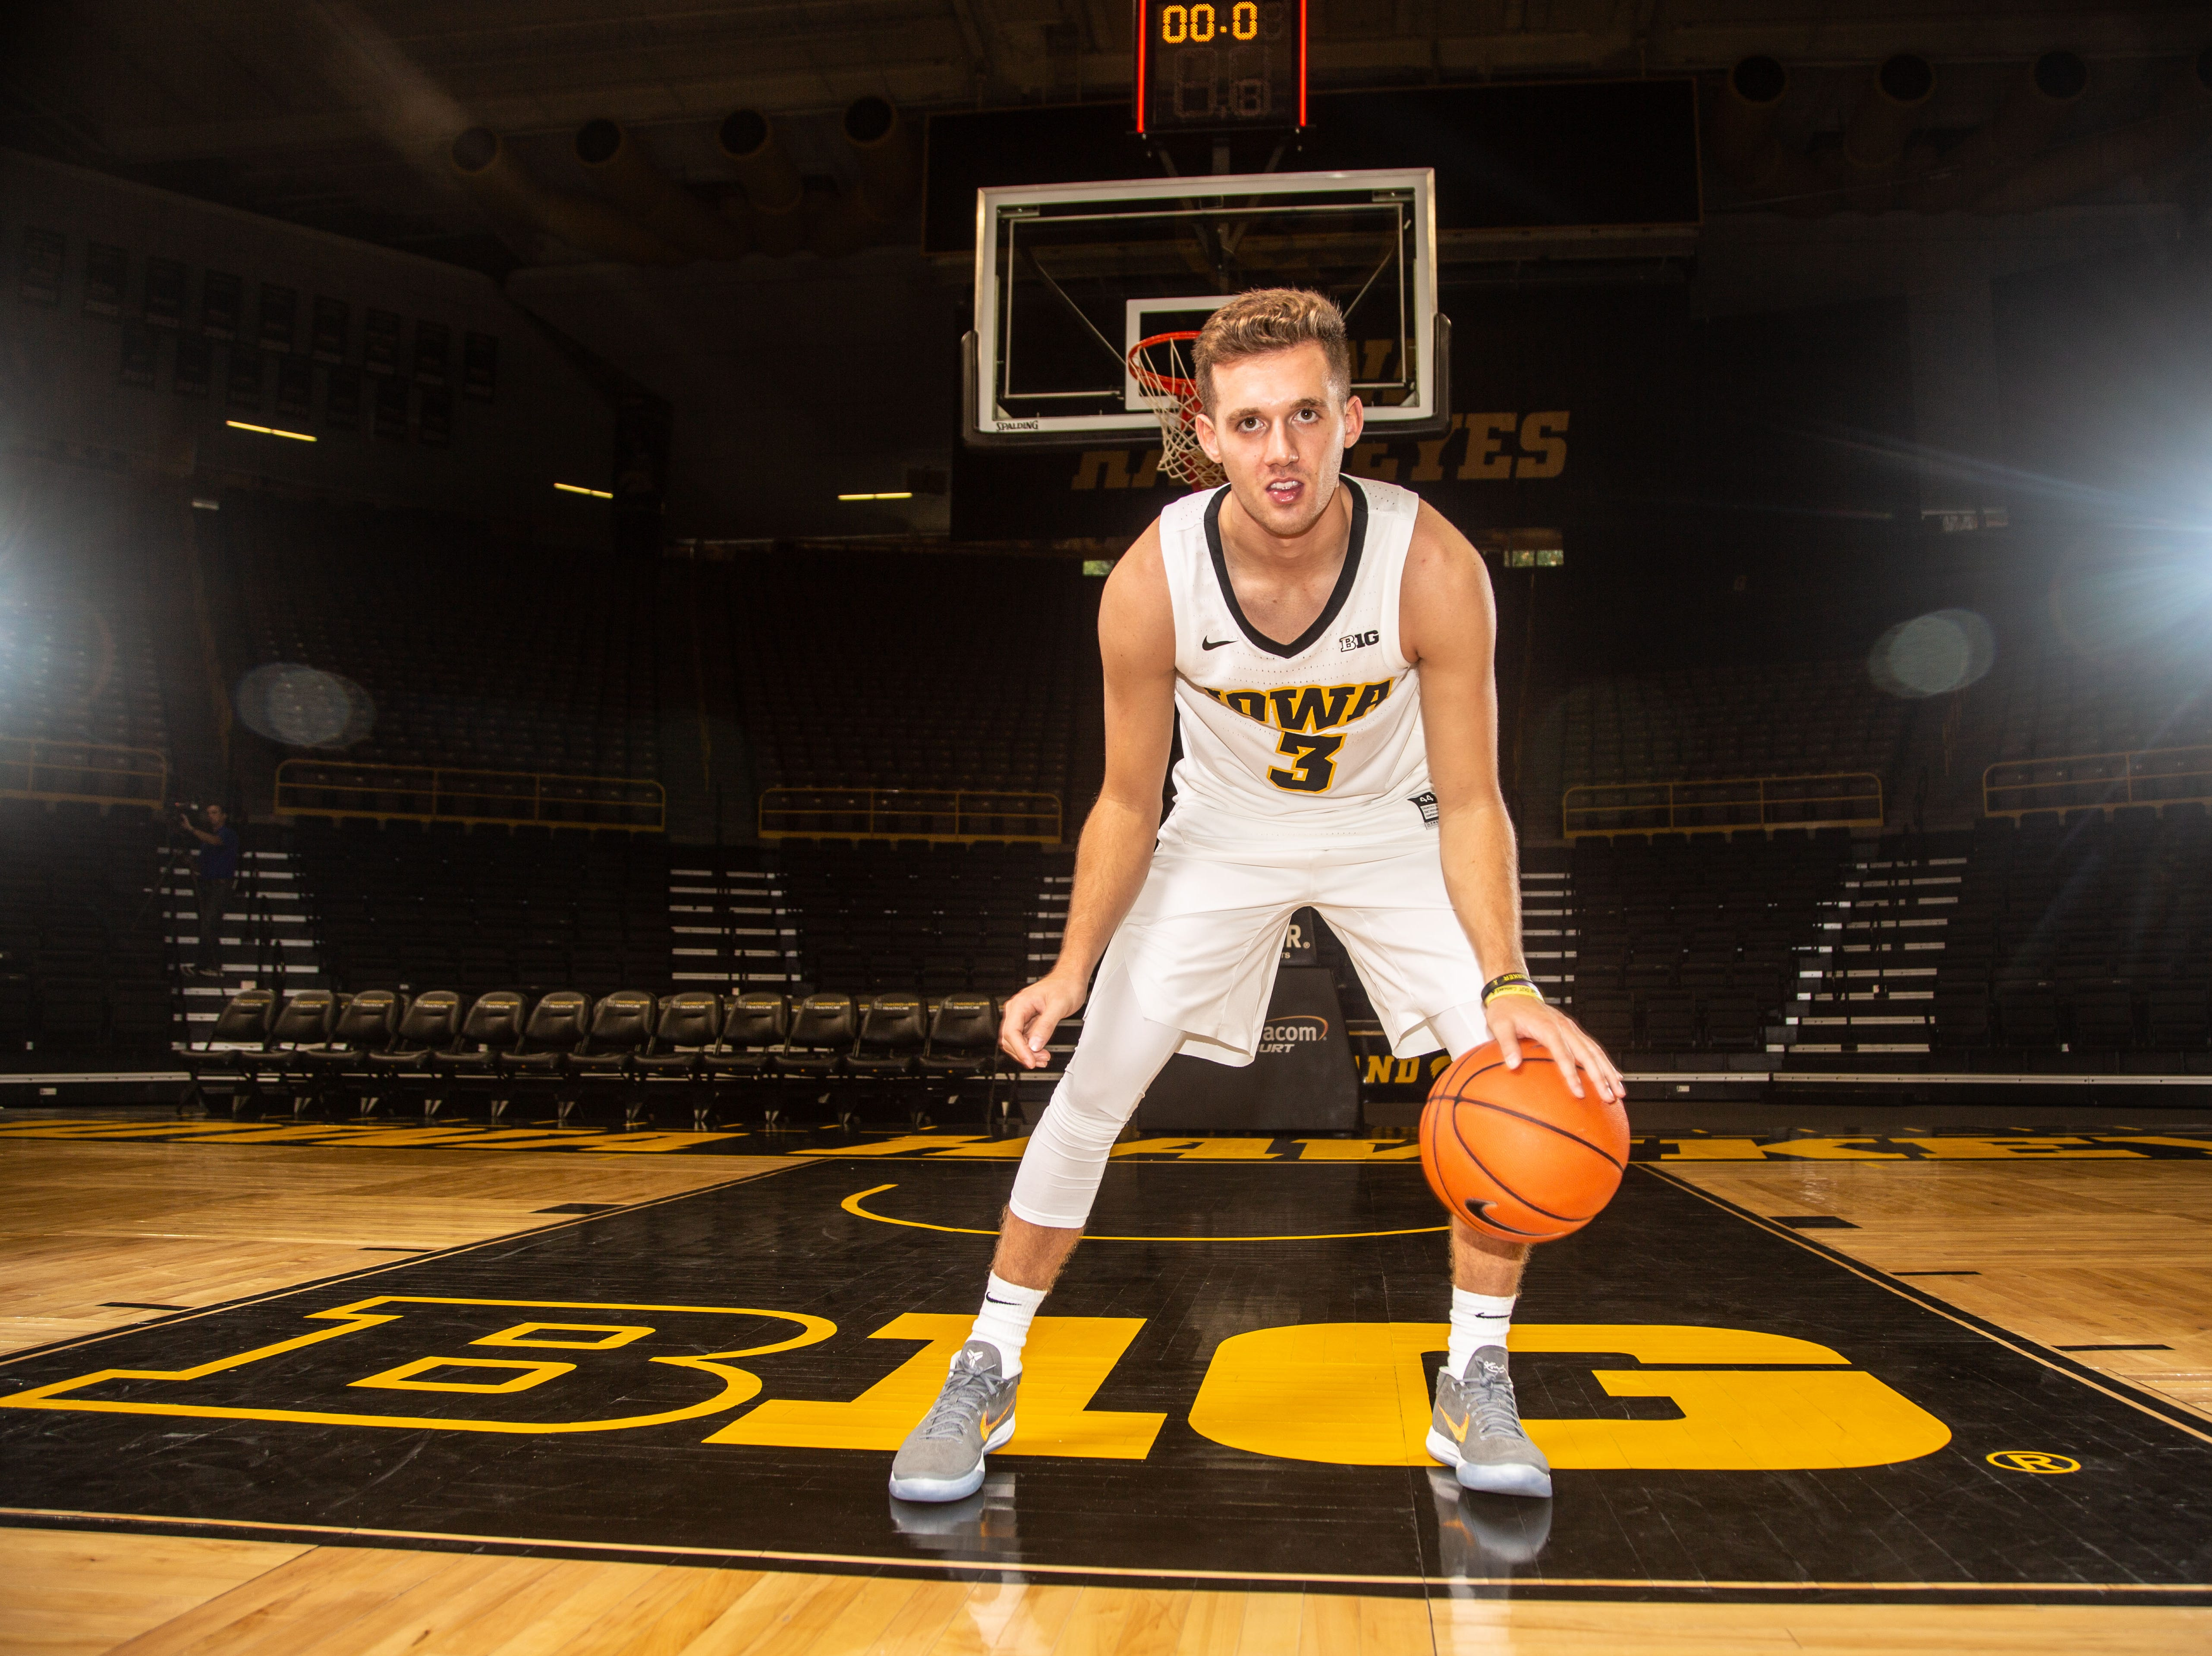 Iowa guard Jordan Bohannon poses for a photo during Hawkeye media day at Carver Hawkeye ArenaMonday, Oct. 8, 2018.